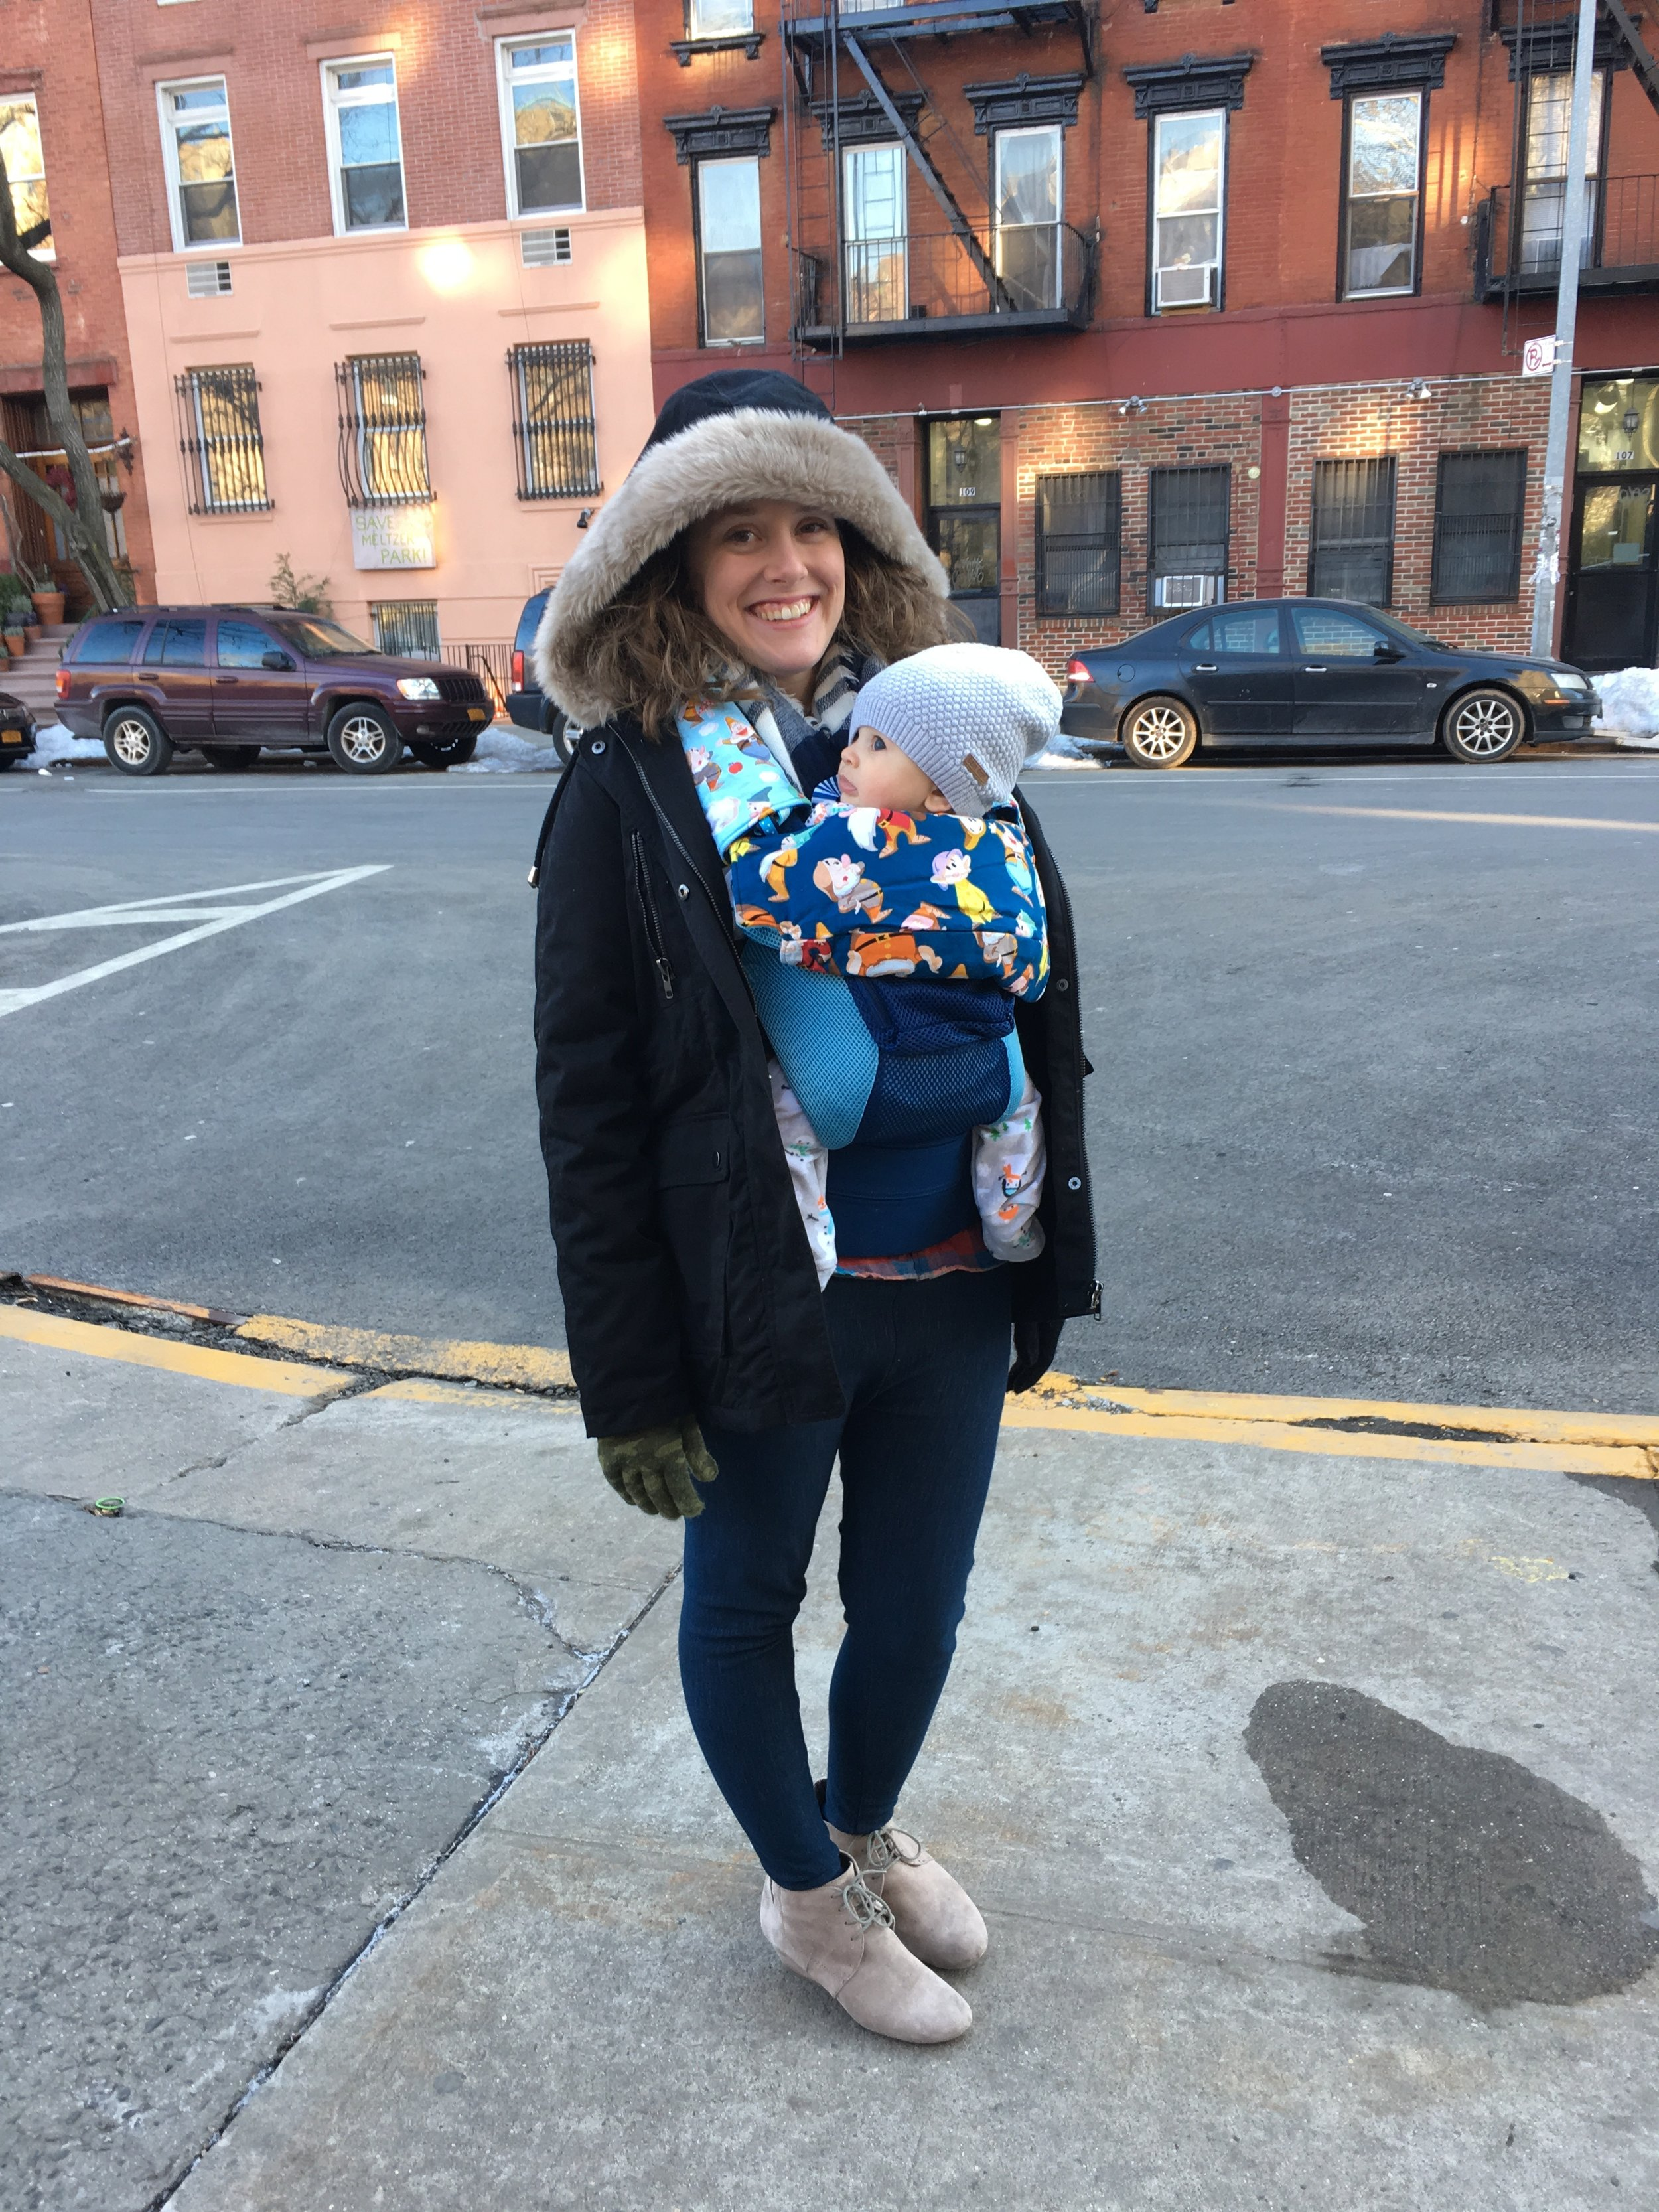 Noah's first trip to Manhattan. Pretty sure babywearing literally saves lives when subways are involved.